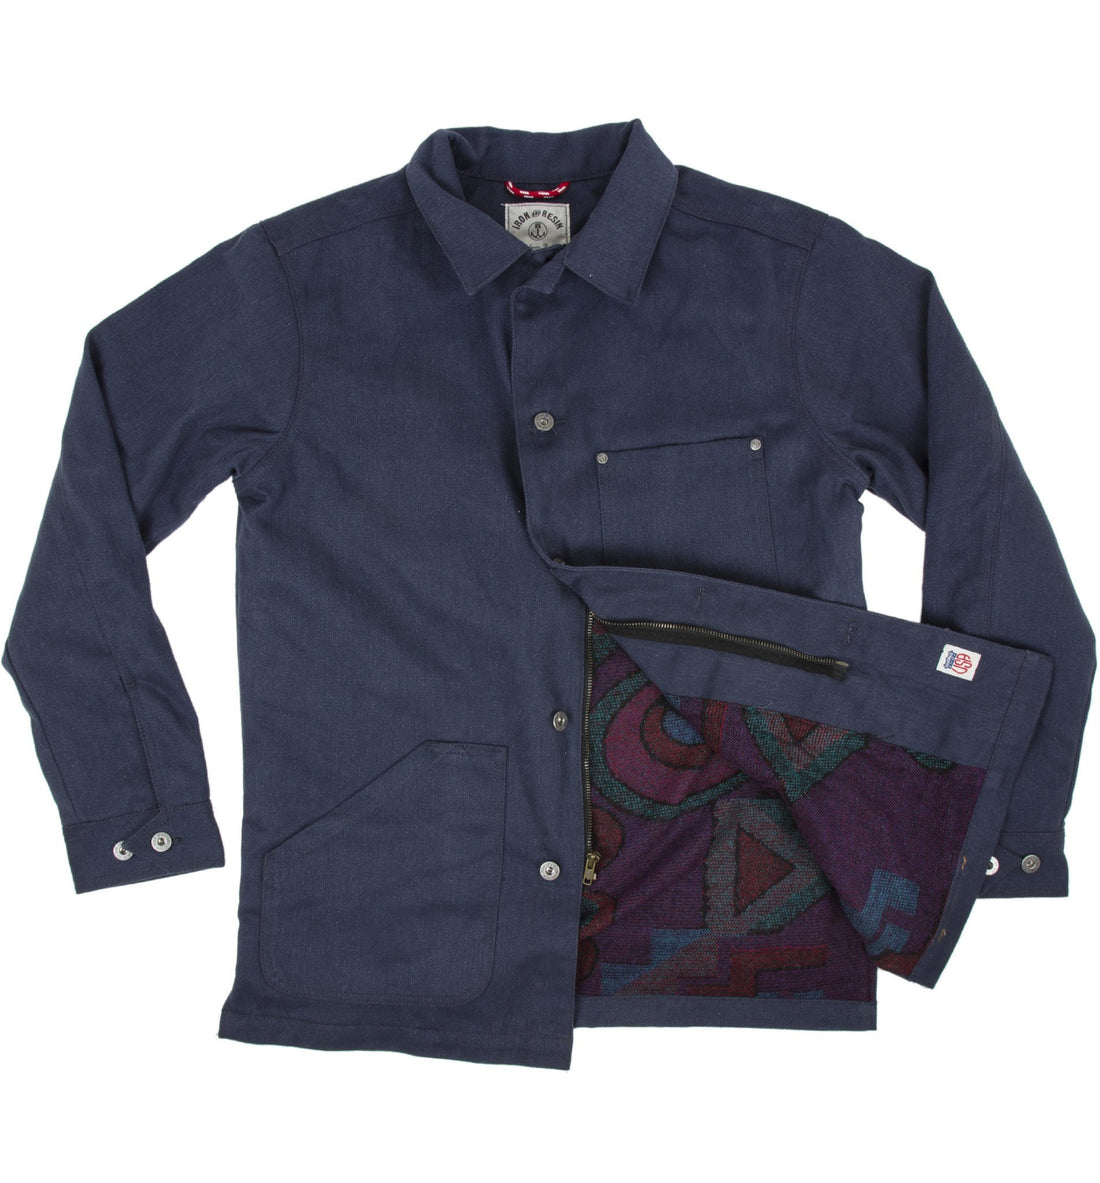 INR Industry Chore Jacket - Apparel: Men's: Outerwear - Iron and Resin